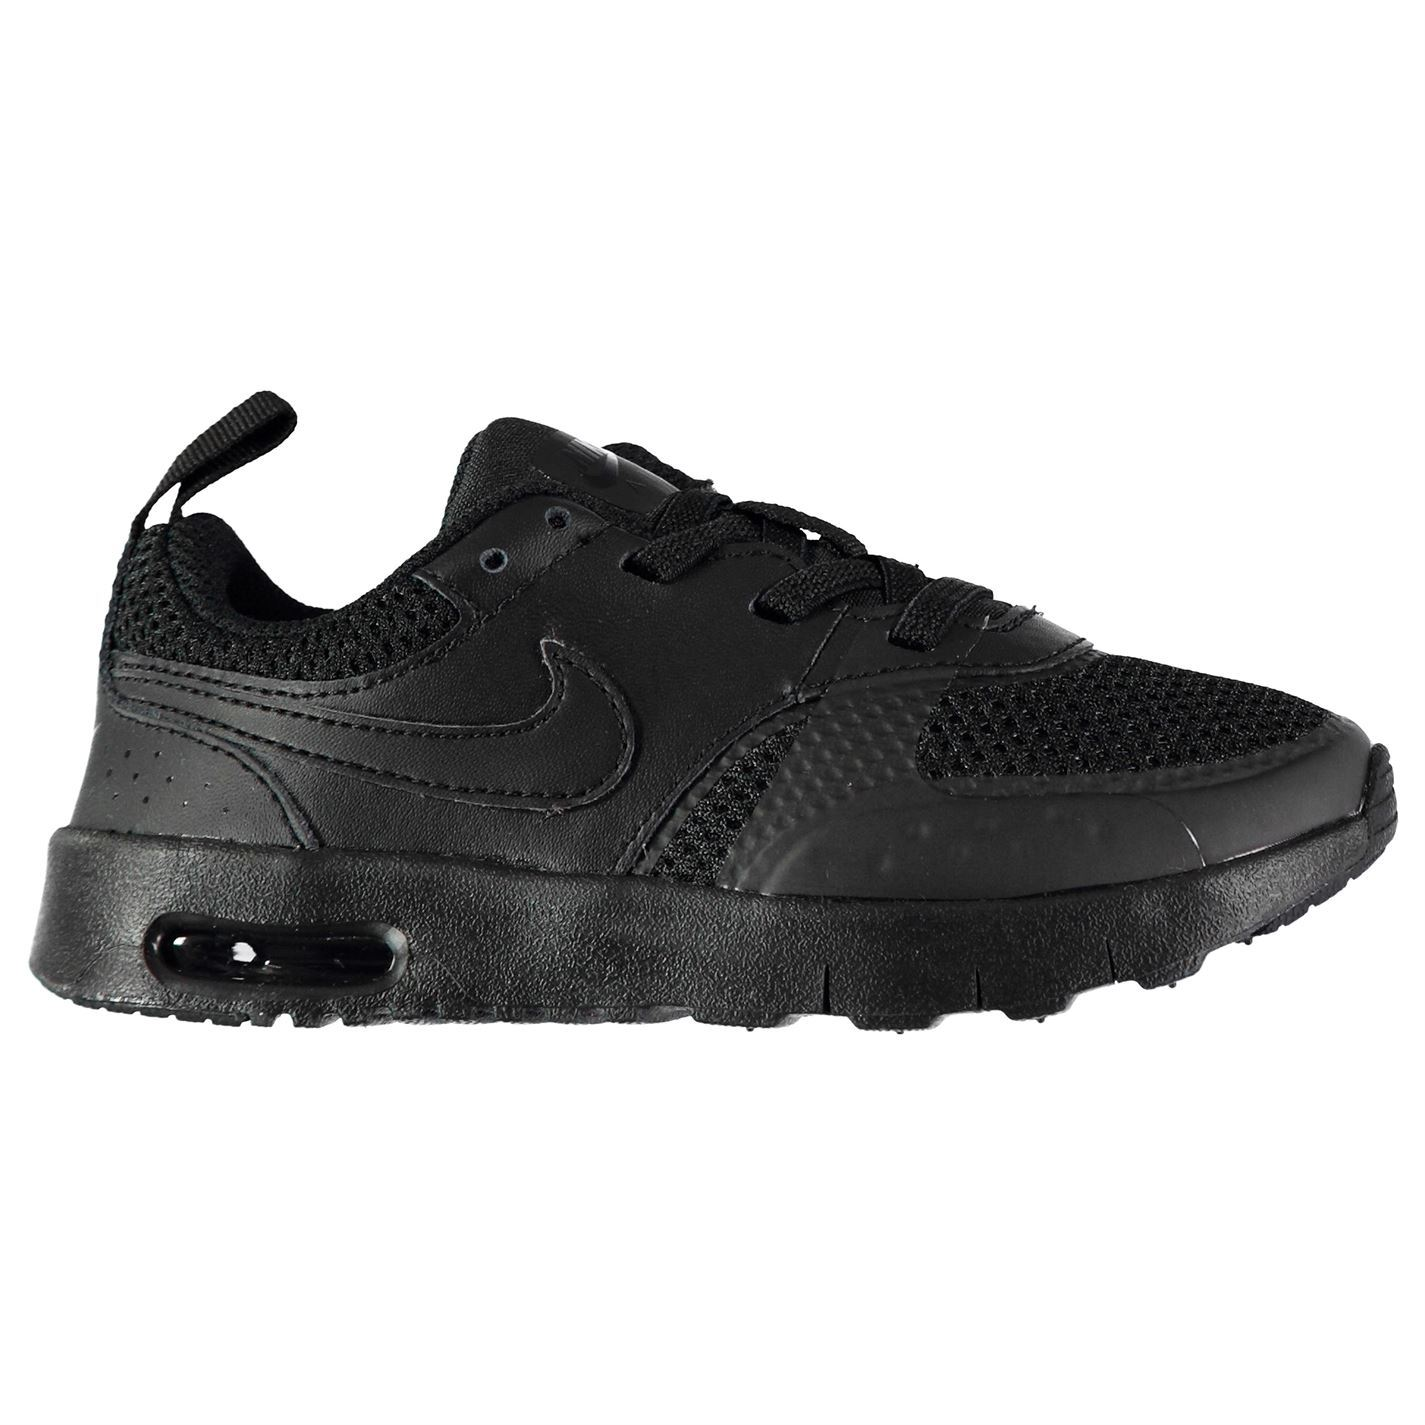 save off f4b23 6491e ... Nike Air Max Vision Trainers Infant Boys Black Shoes Footwear ...